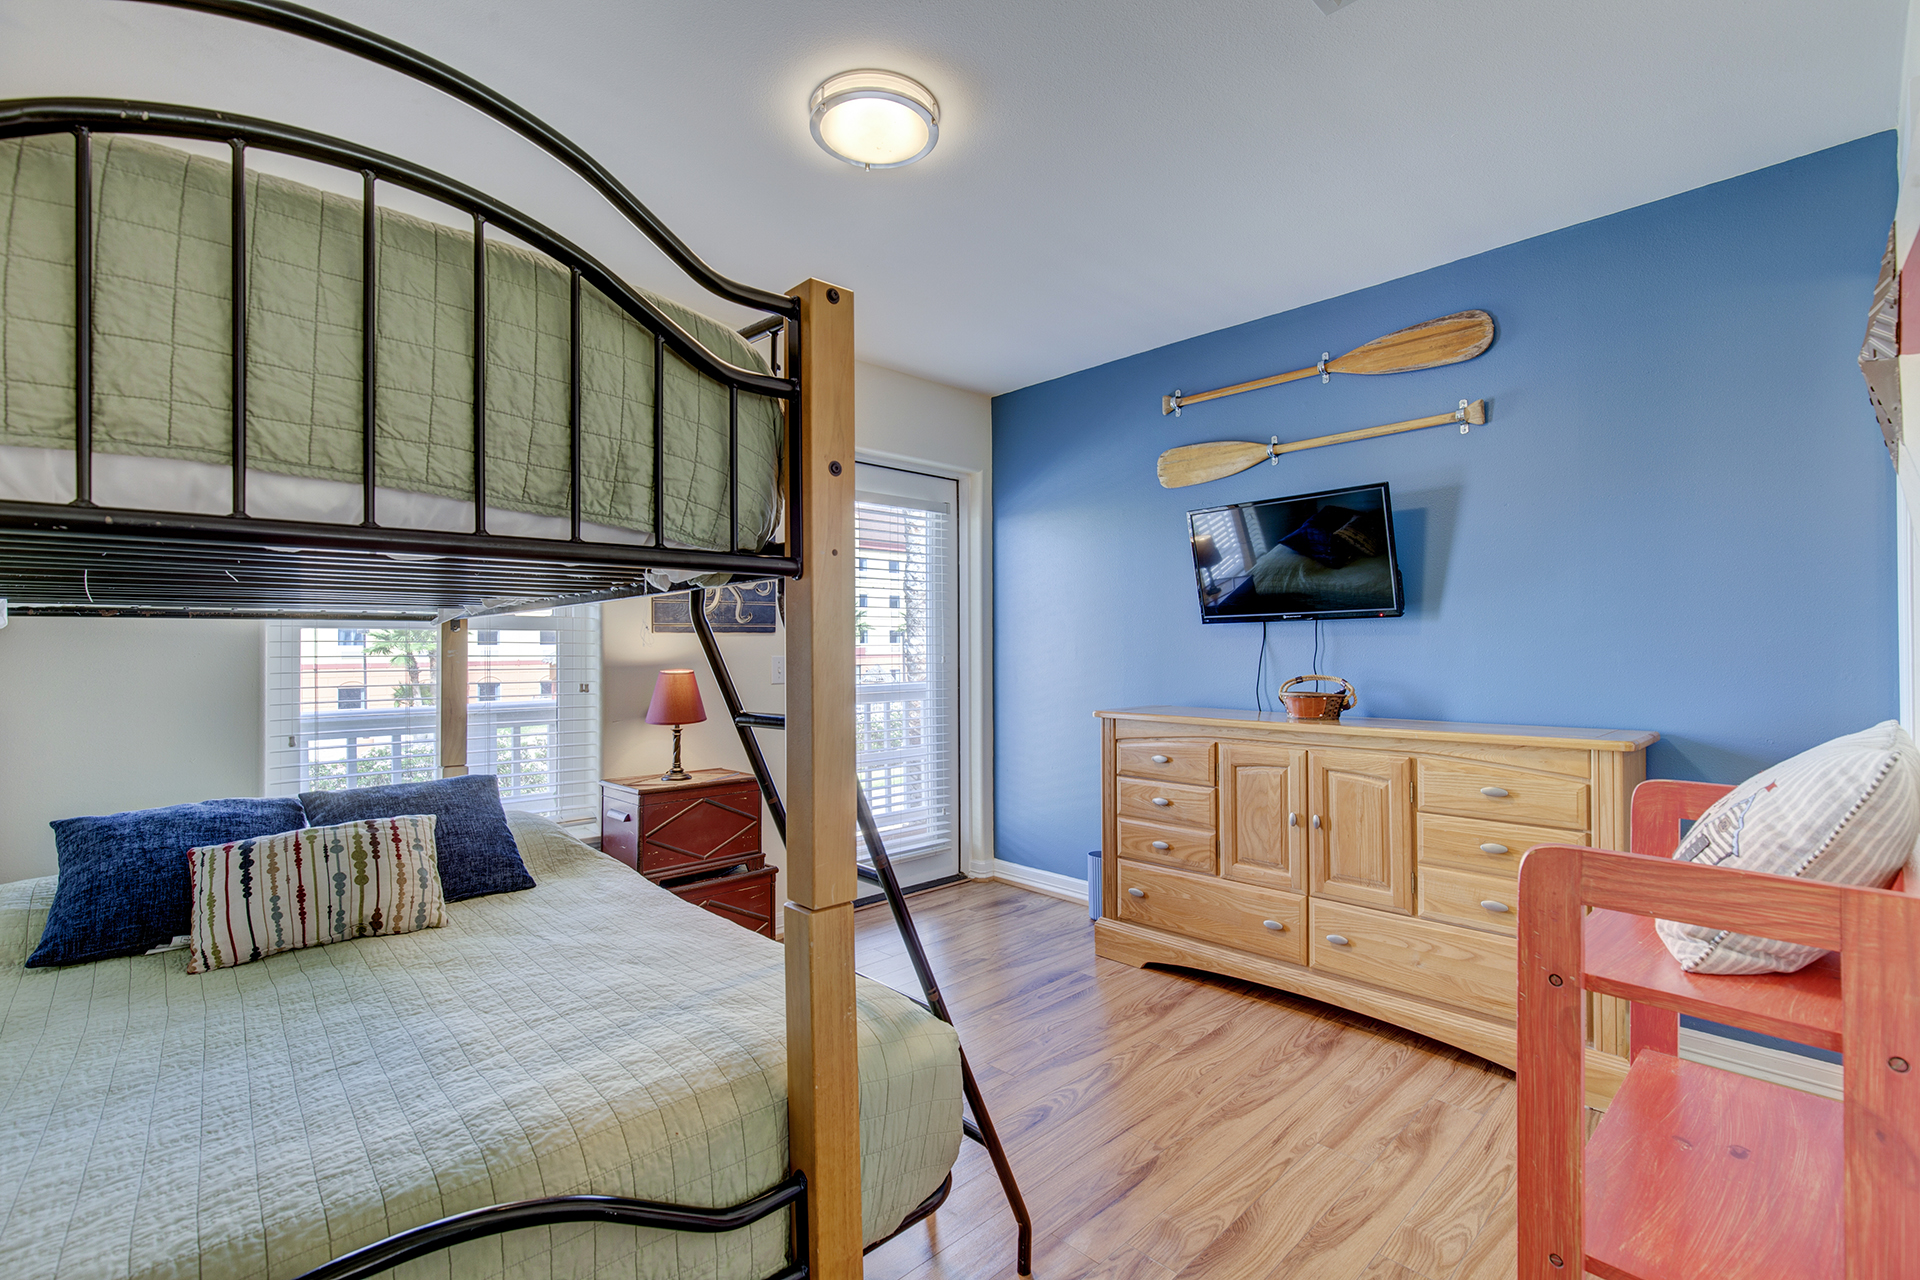 Guest bedroom with bunk beds and flat screen.